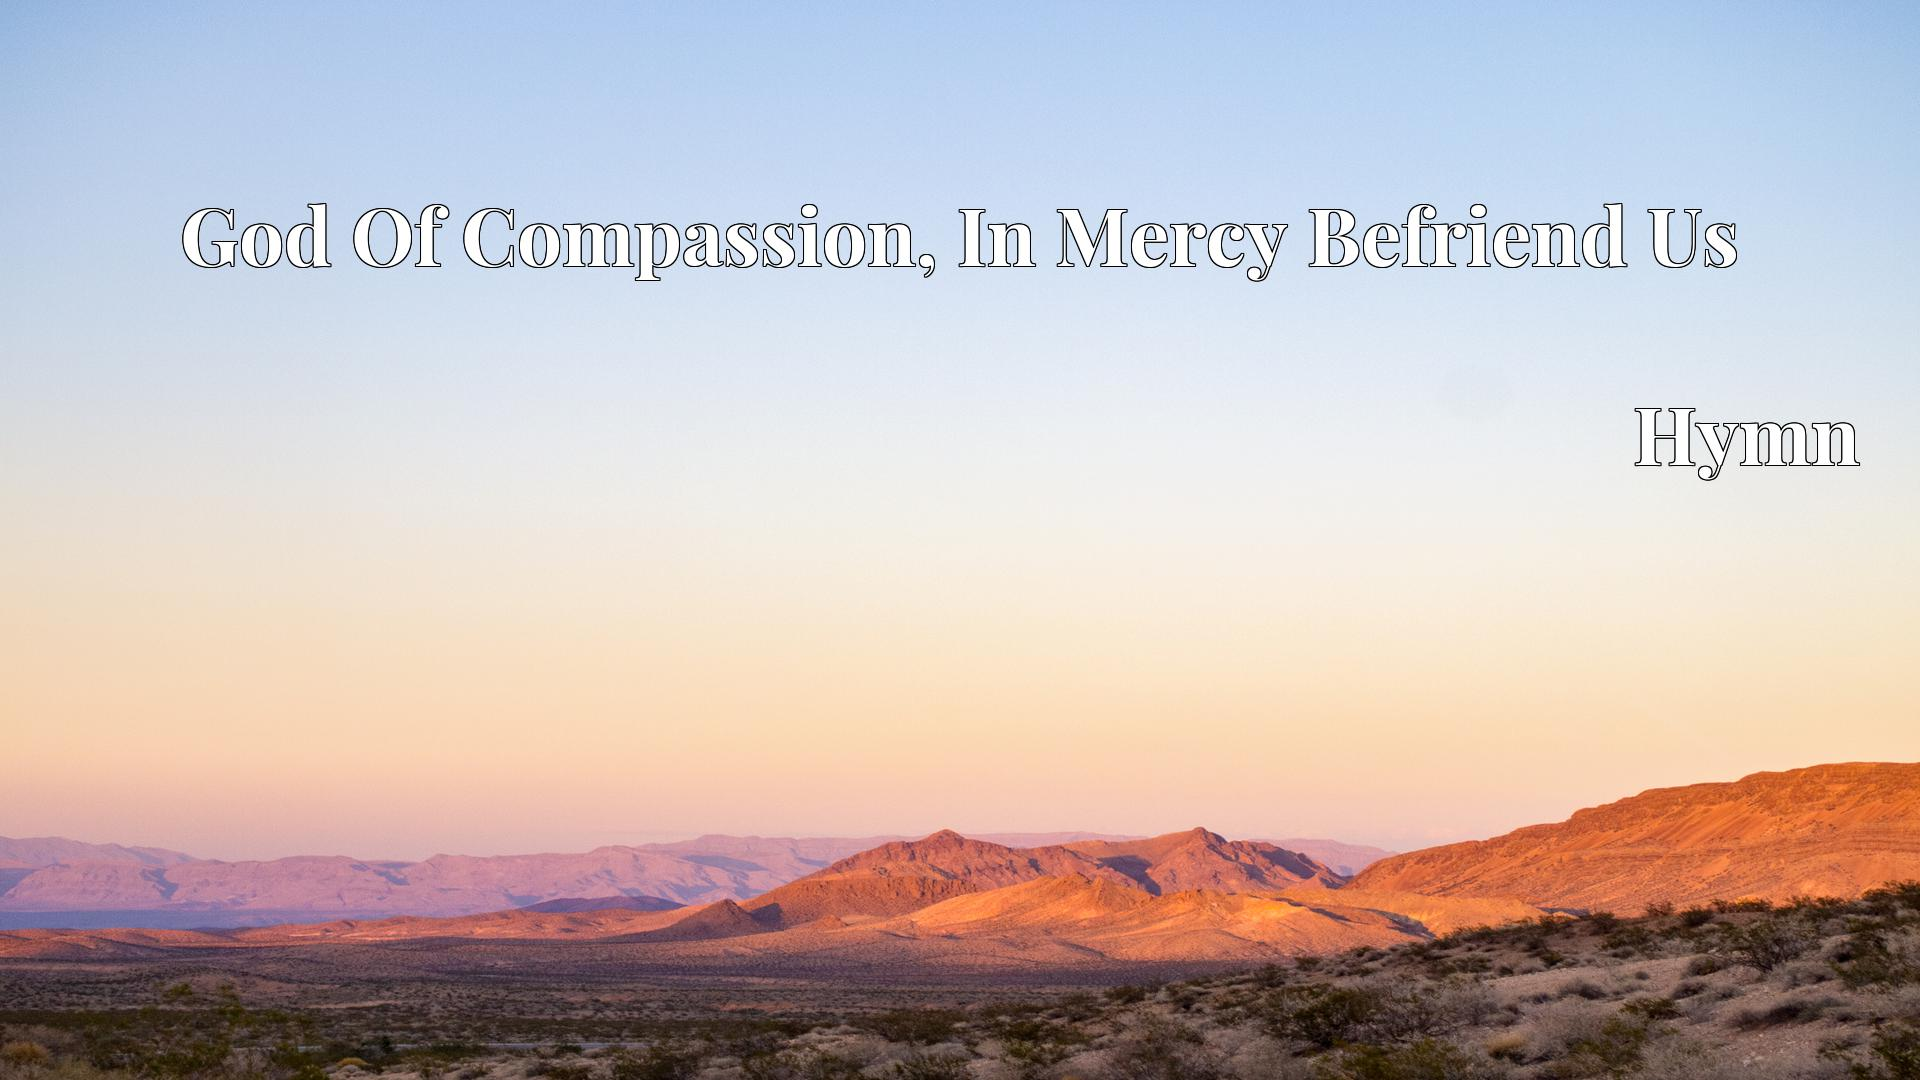 God Of Compassion, In Mercy Befriend Us - Hymn